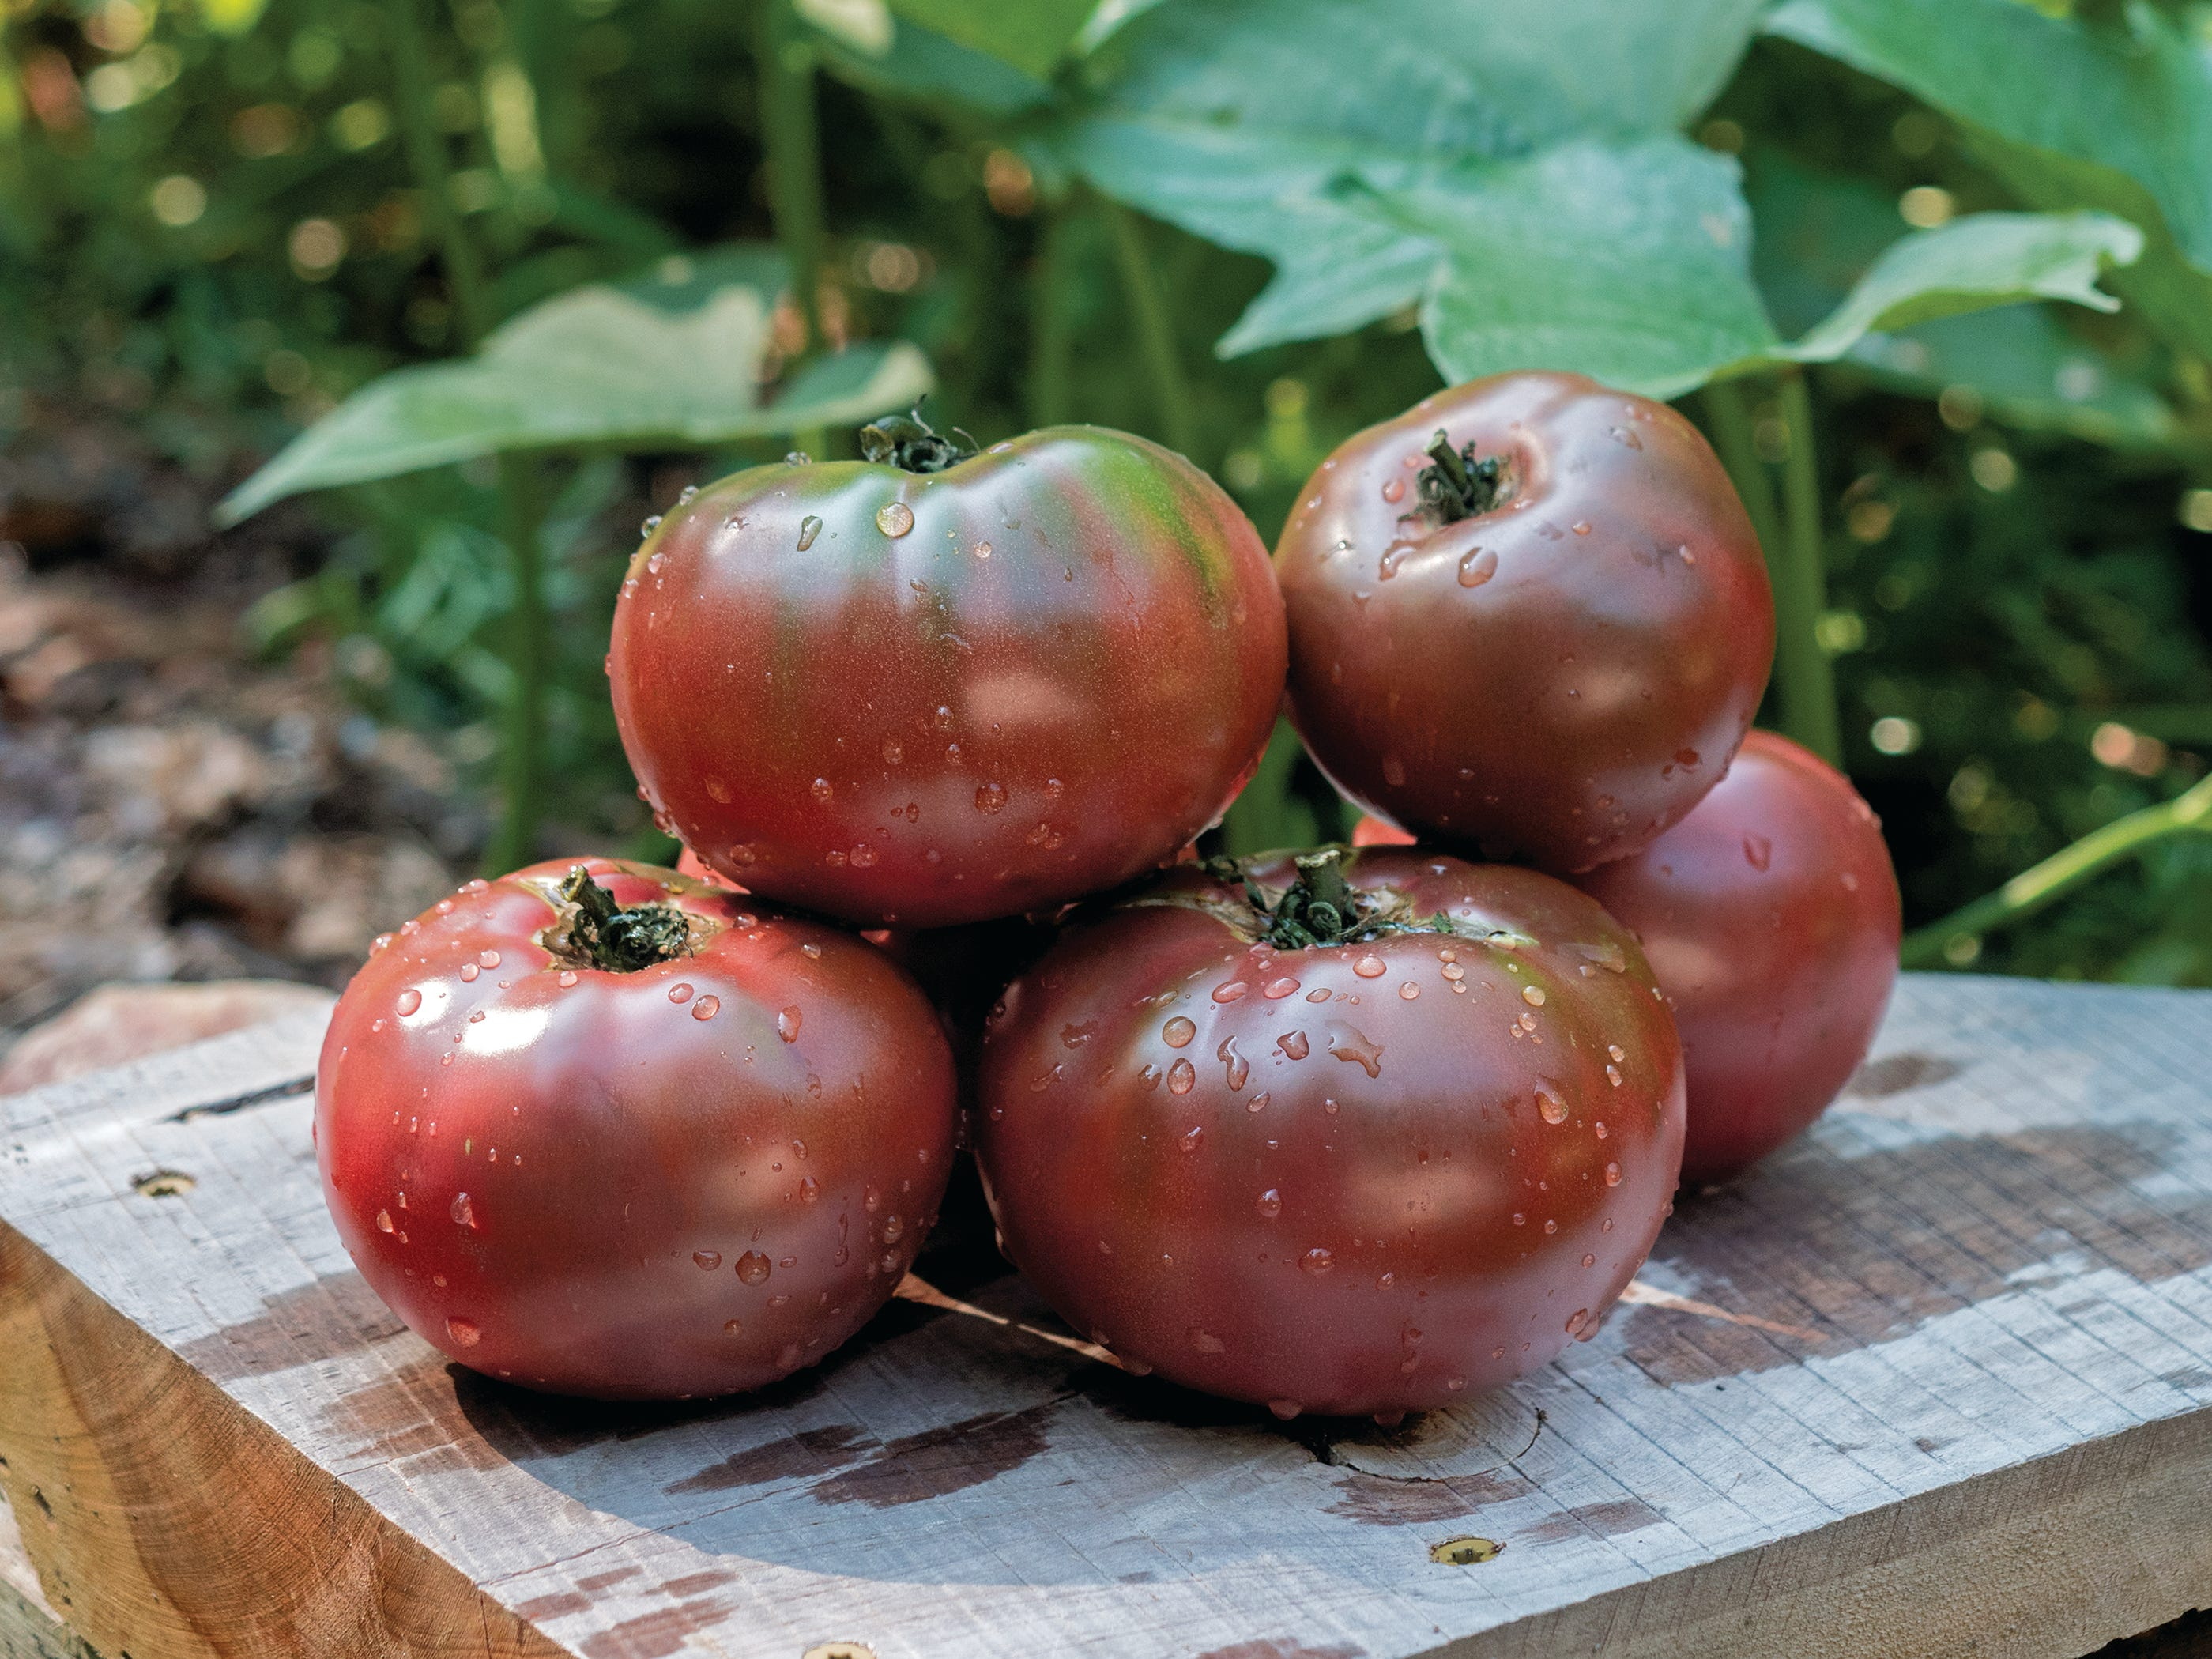 Tomato Purple Boy is a robust, heavy-yielding plant with fruit that matures in 80 days.